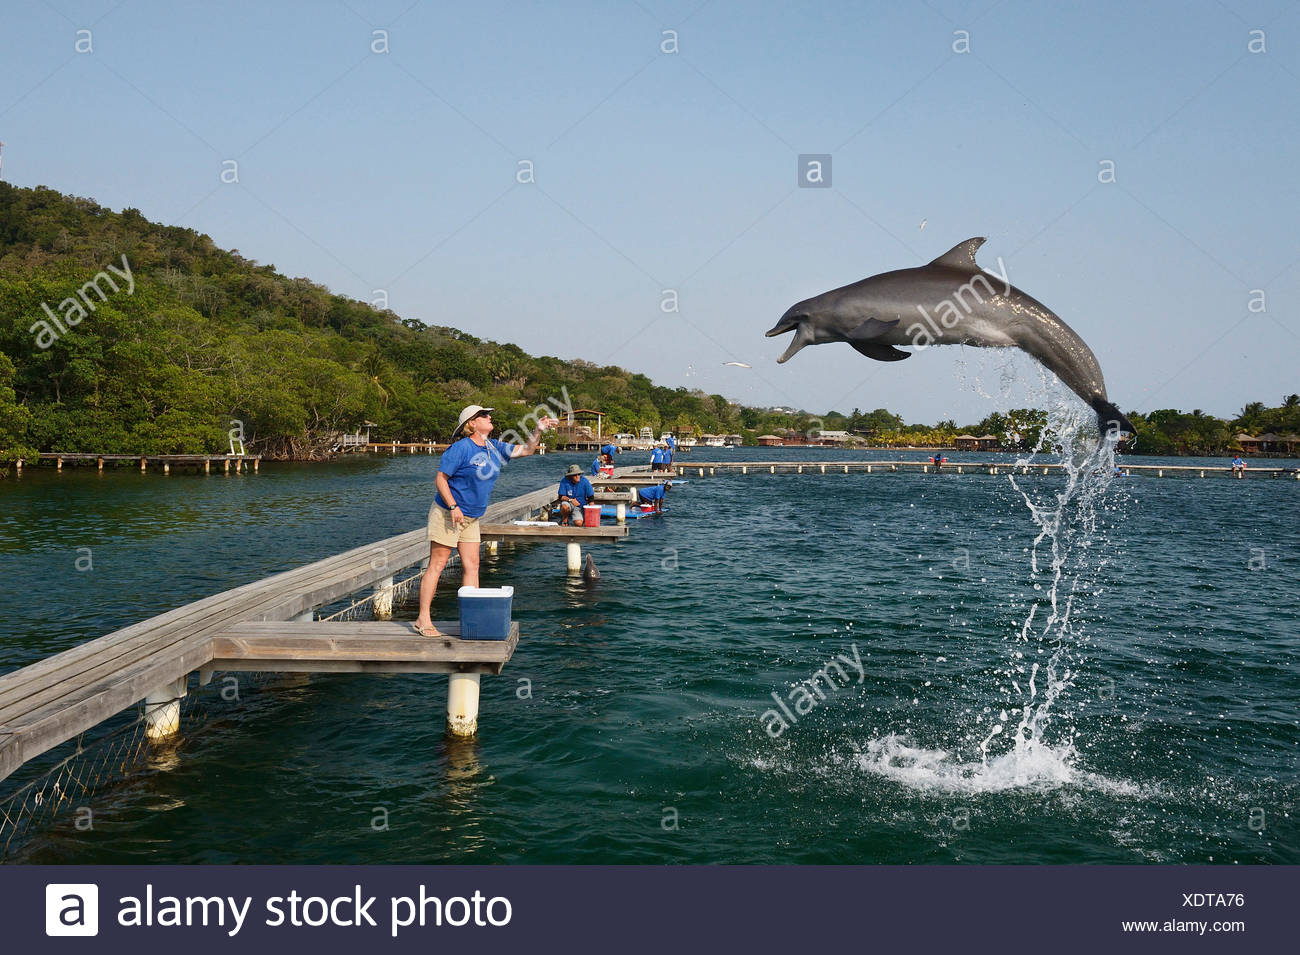 A biologist throws fish to a bottlenose dolphin at the Roatan Institute for Marine Science at Anthony's Key Resort in Honduras. - Stock Image